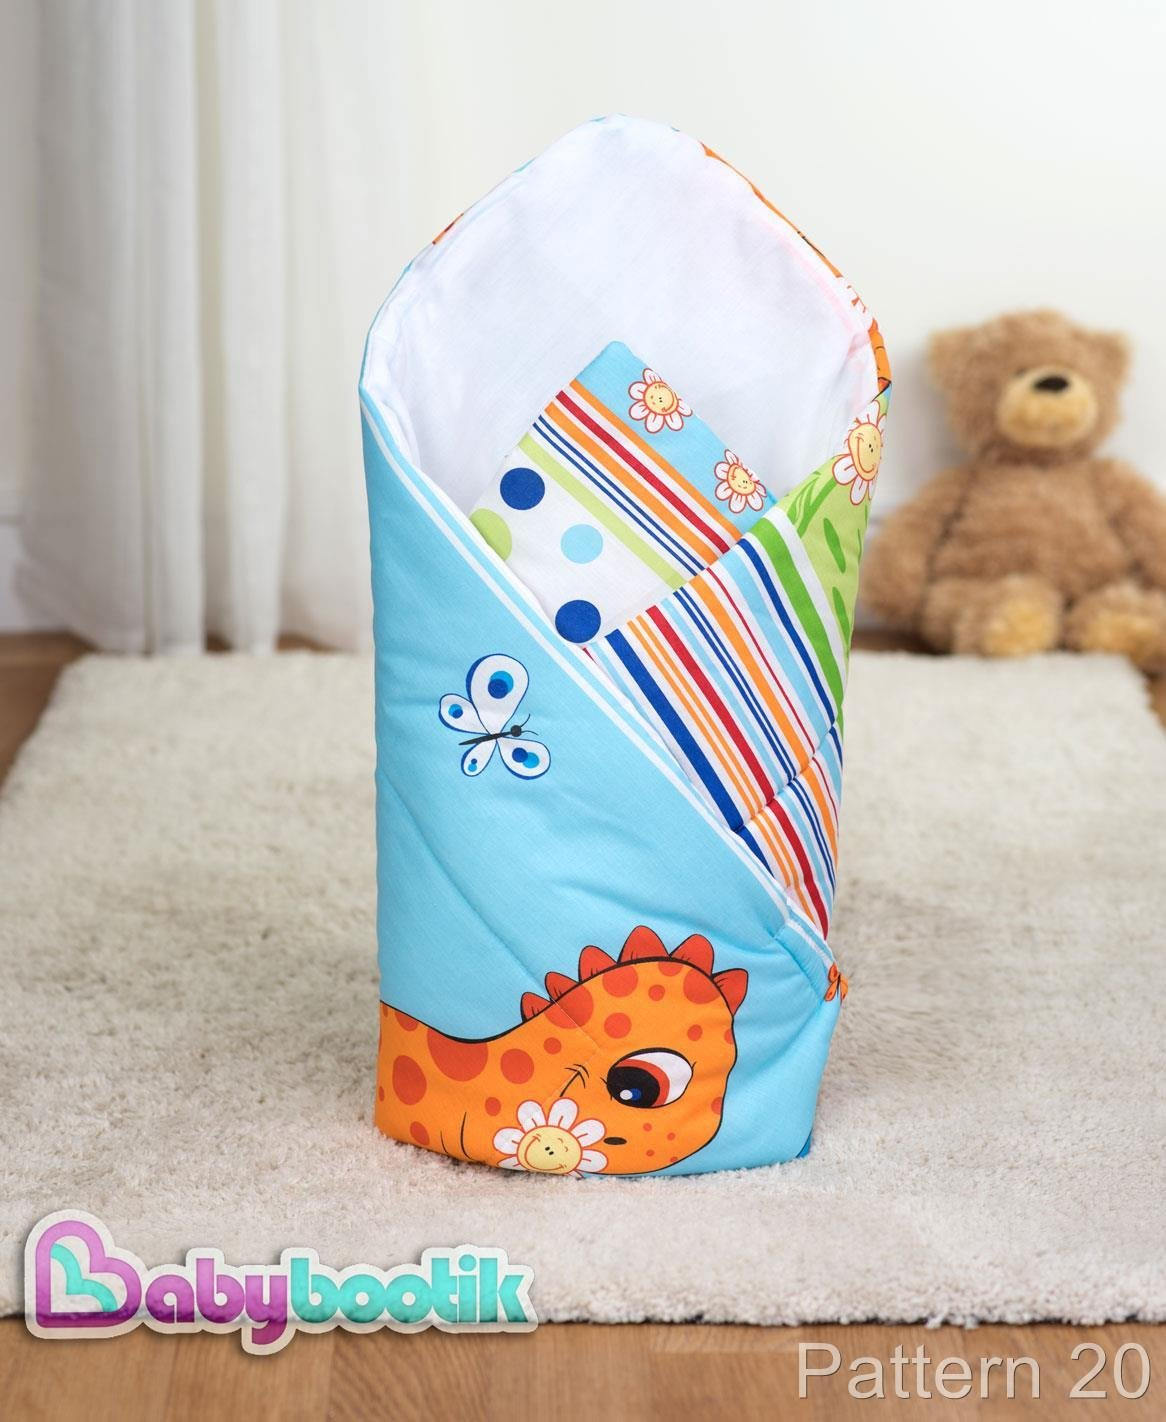 Newborn Baby Soft Cotton Swaddle Wrap Blanket Sleeping Bag - Pattern 20 Baby Comfort